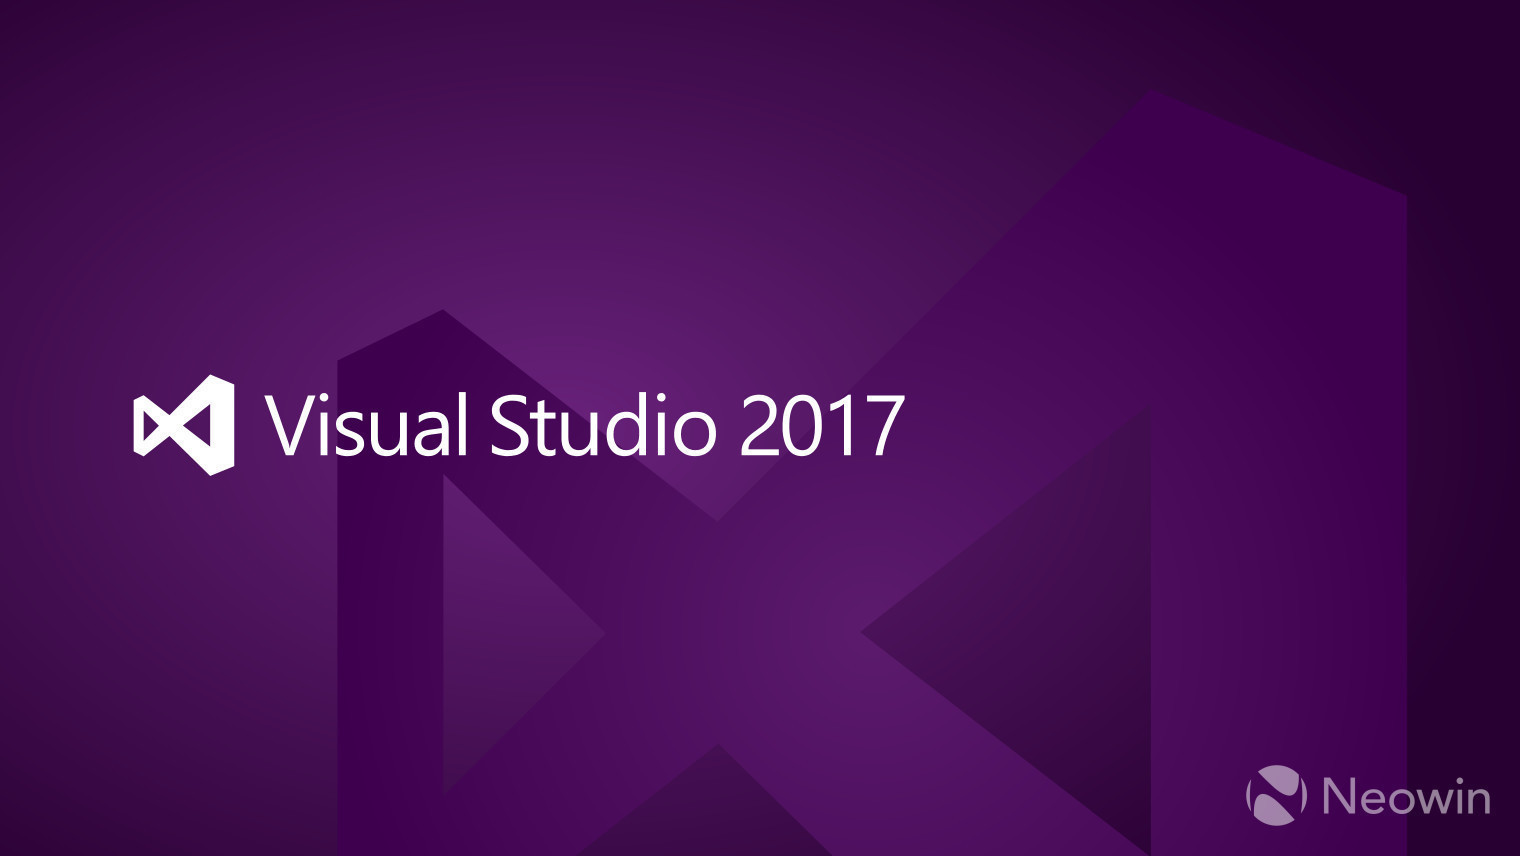 1479328420 visual studio 2017 - Share key bản quyền Visual Studio Enterprise 2017